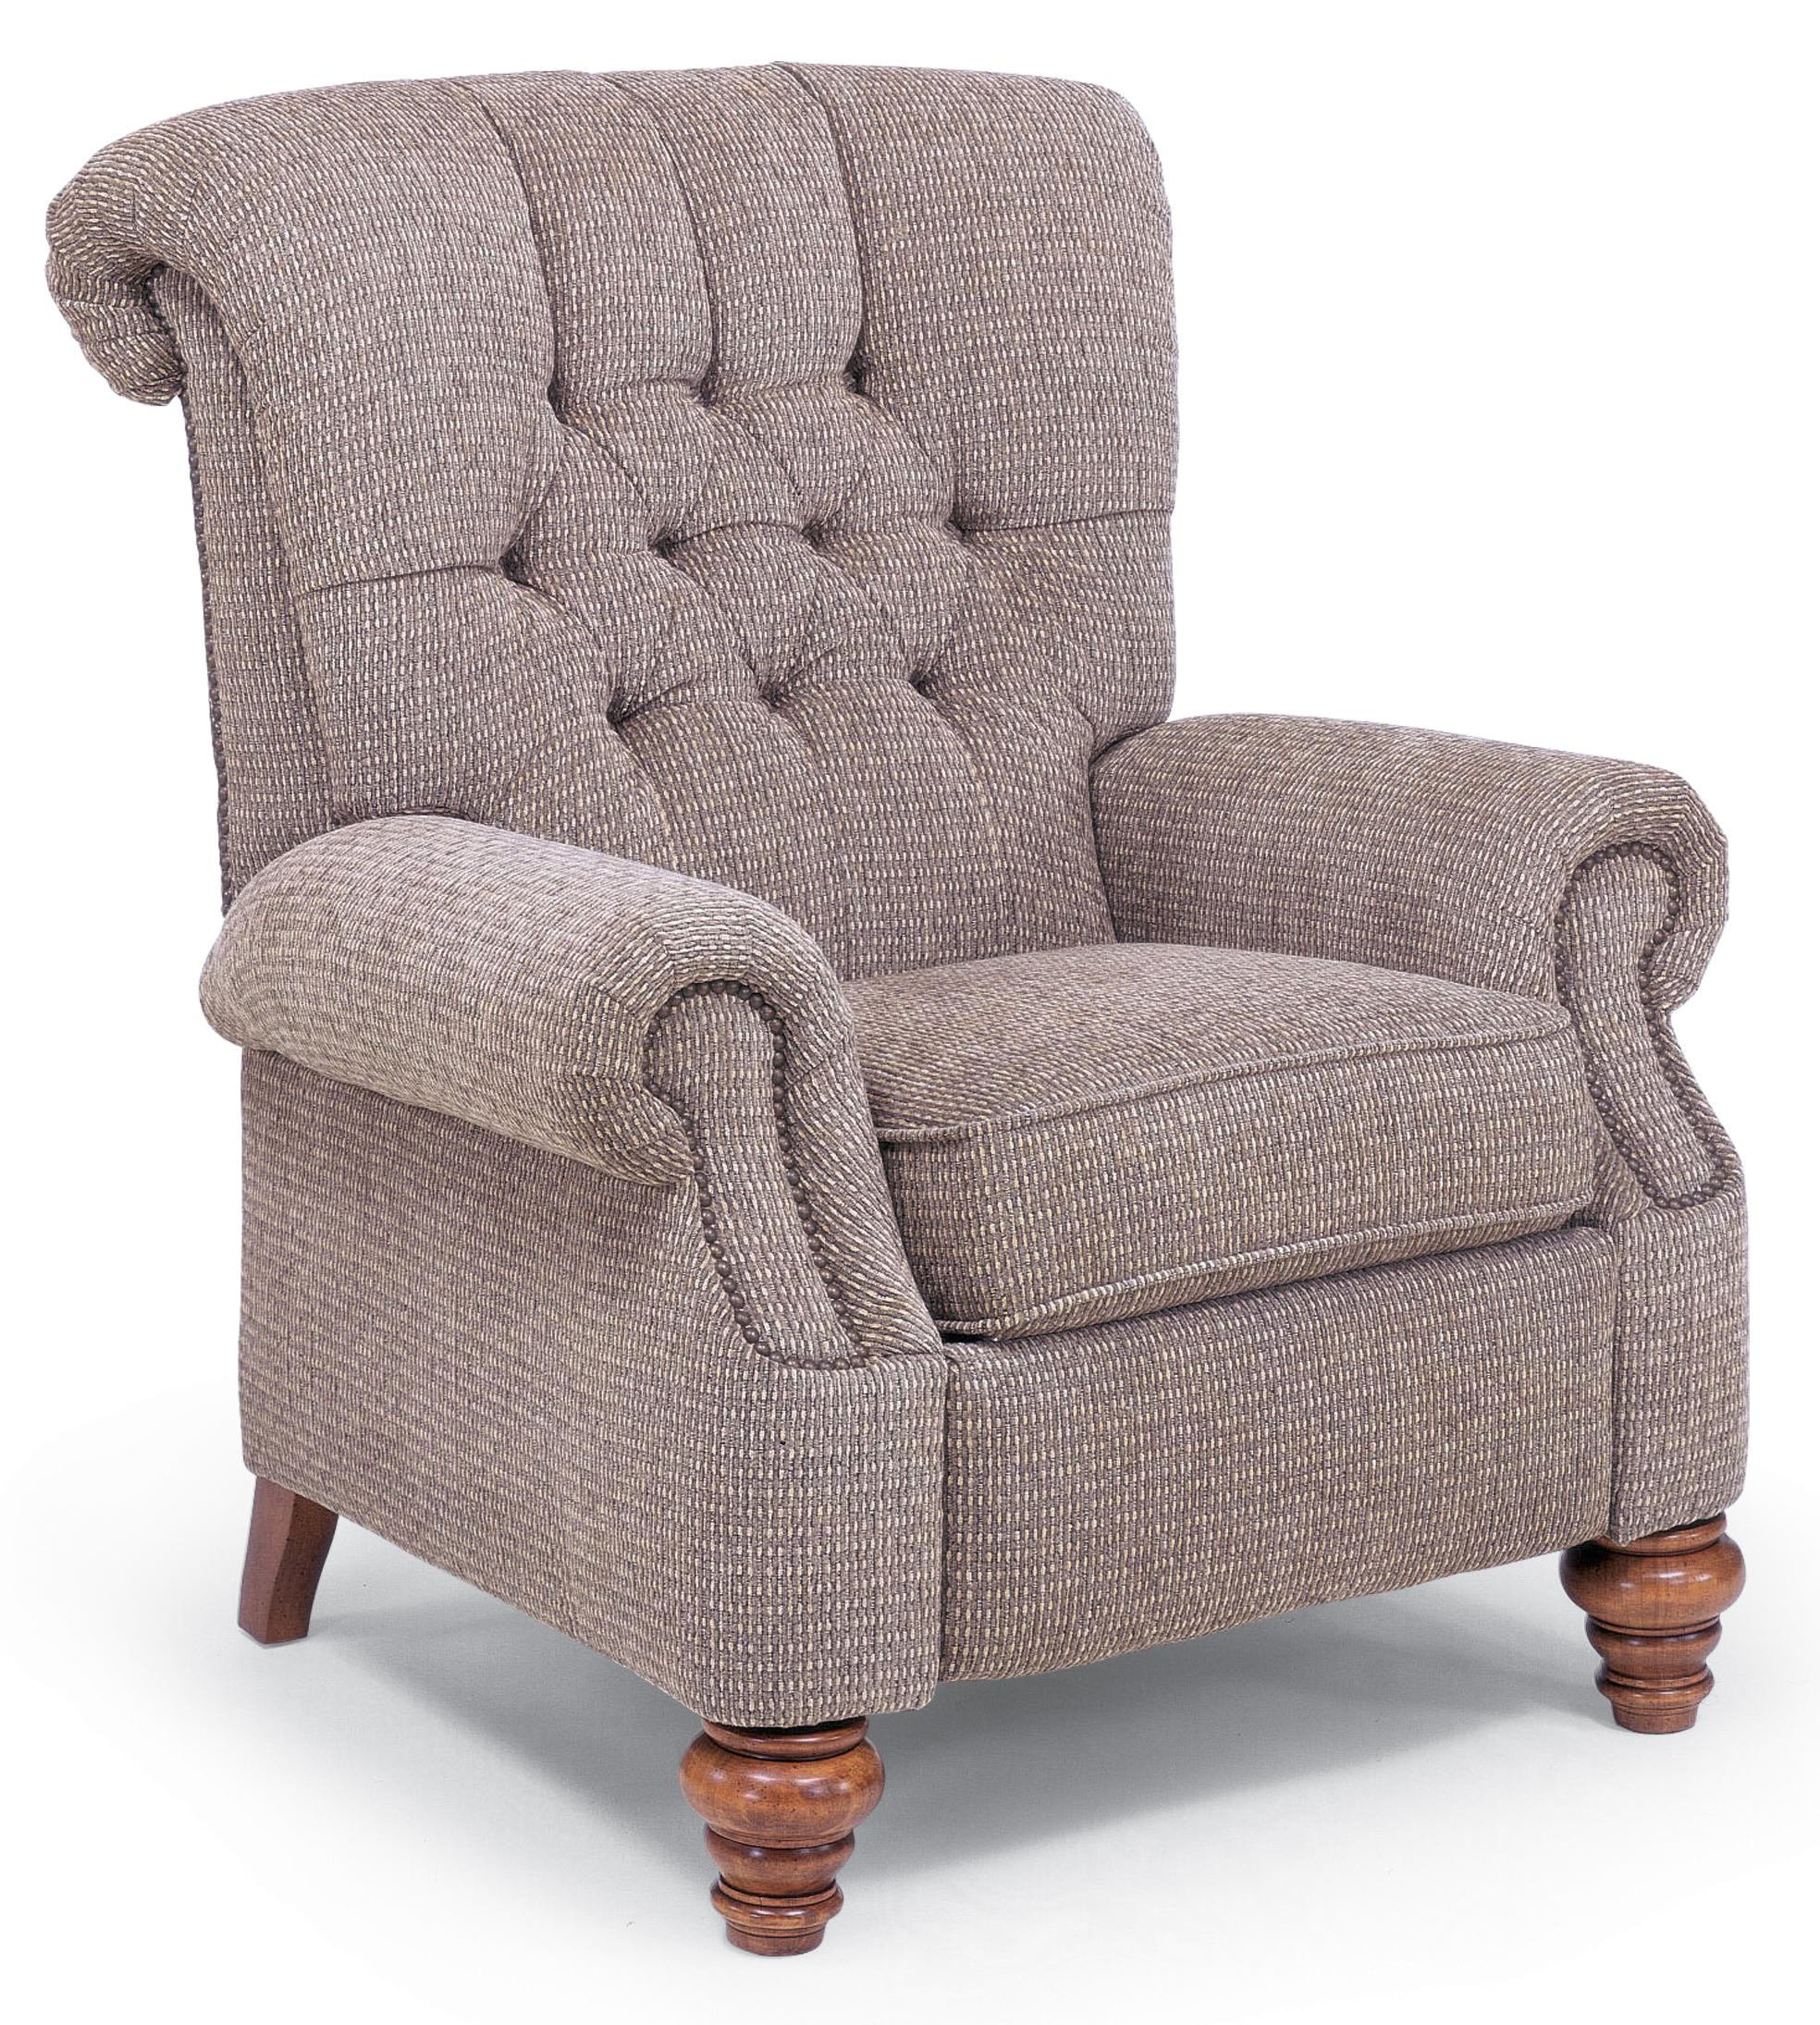 Accents Equestrian High Leg Recliner by Flexsteel at Rooms and Rest